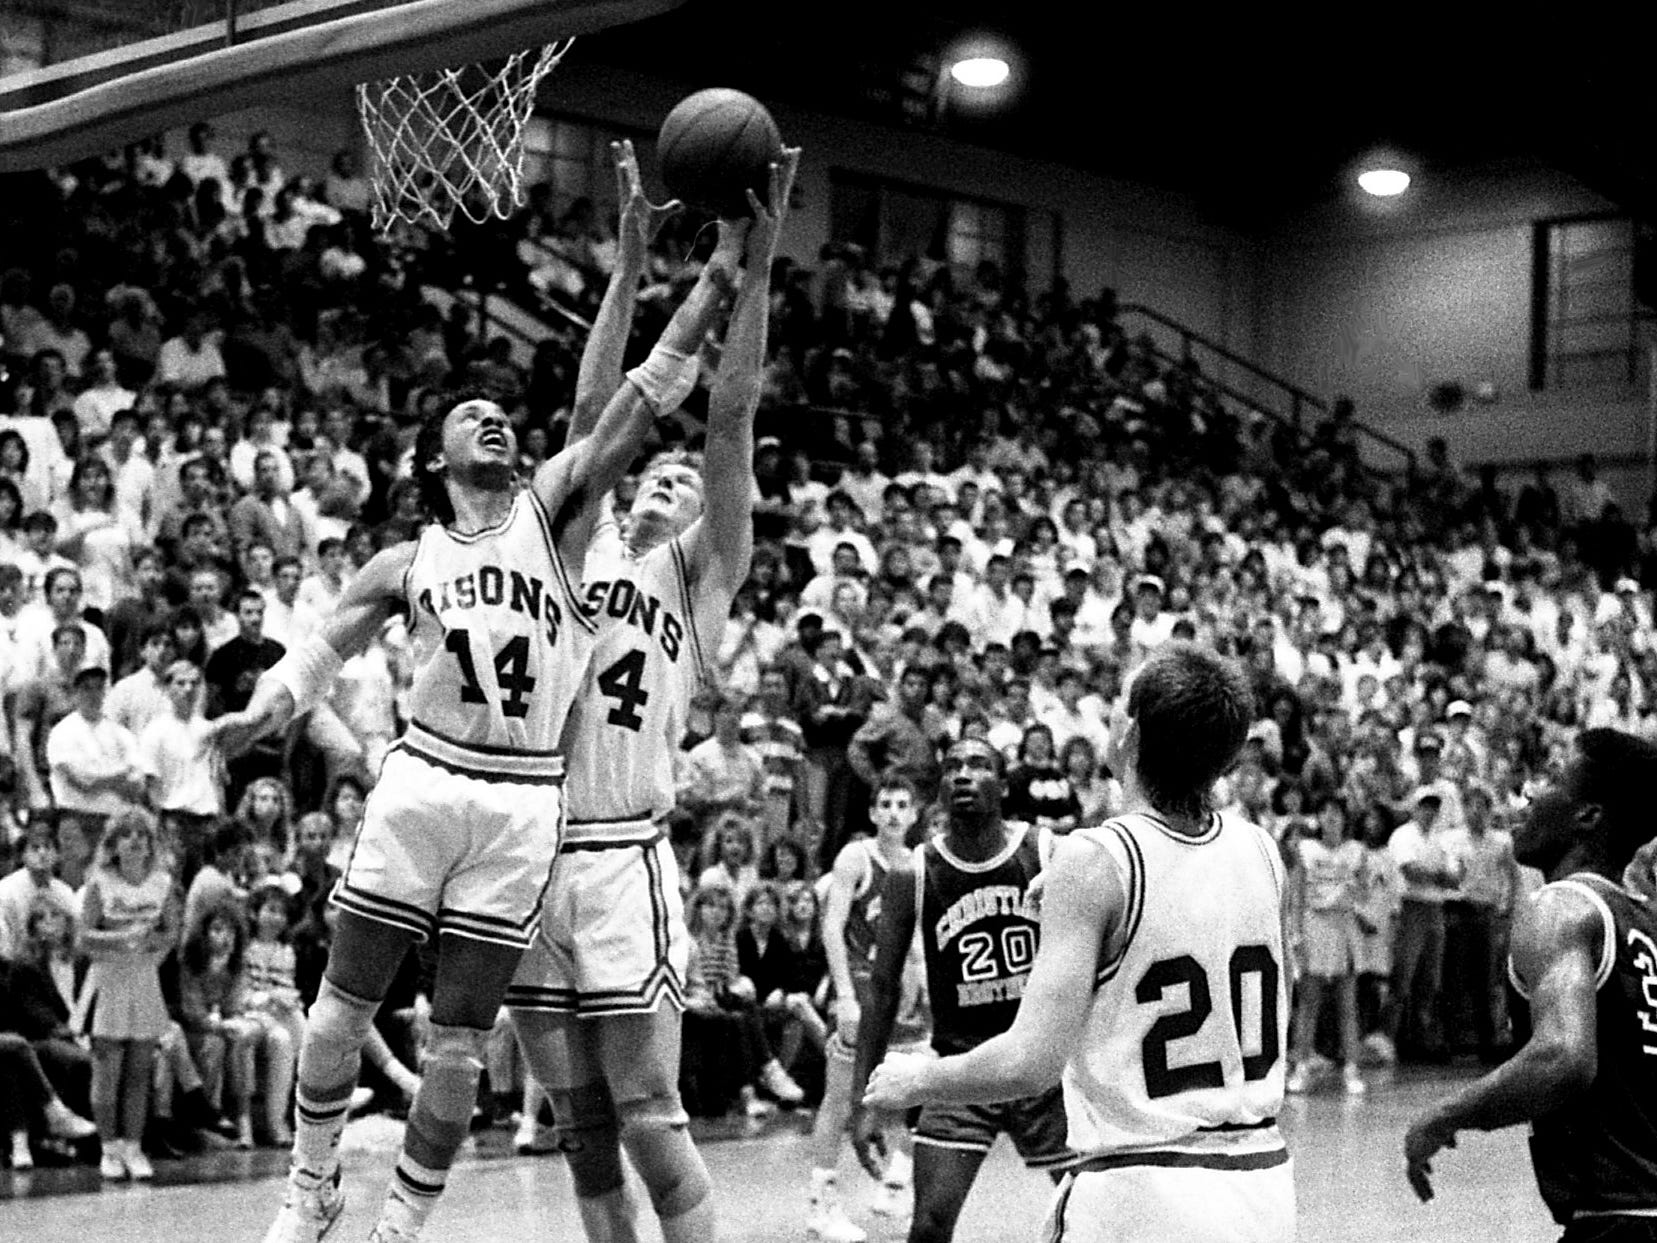 David Lipscomb teammates Marcus Bodie (14) and Philip Hutcheson battle for a rebound as the nation's No. 1-ranked NAIA team defeated Christian Brothers of Memphis 103-91 before 3,300 at McQuiddy Gym on Feb. 2, 1989, to extend its winning streak to 31 games.